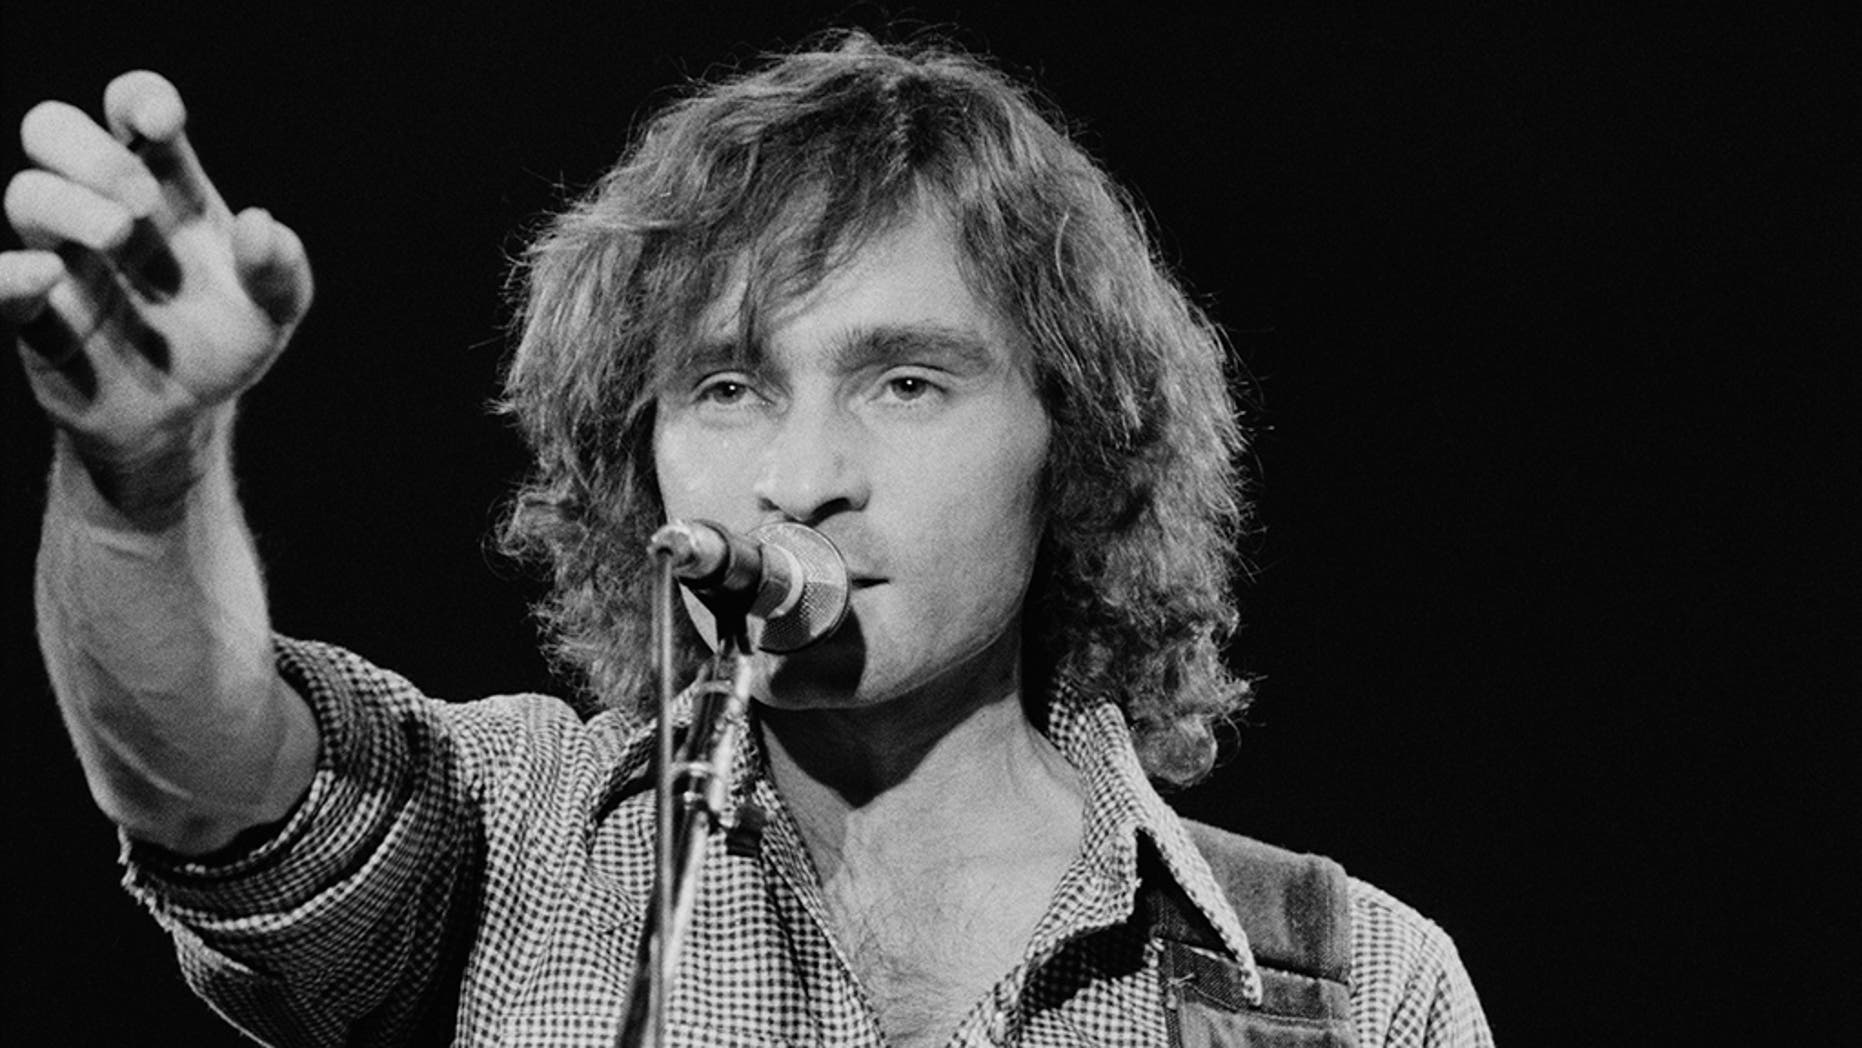 Marty Balin, Jefferson Airplane co-founder, has died. He was 76. The late singer is pictured here in Sept. 1978.